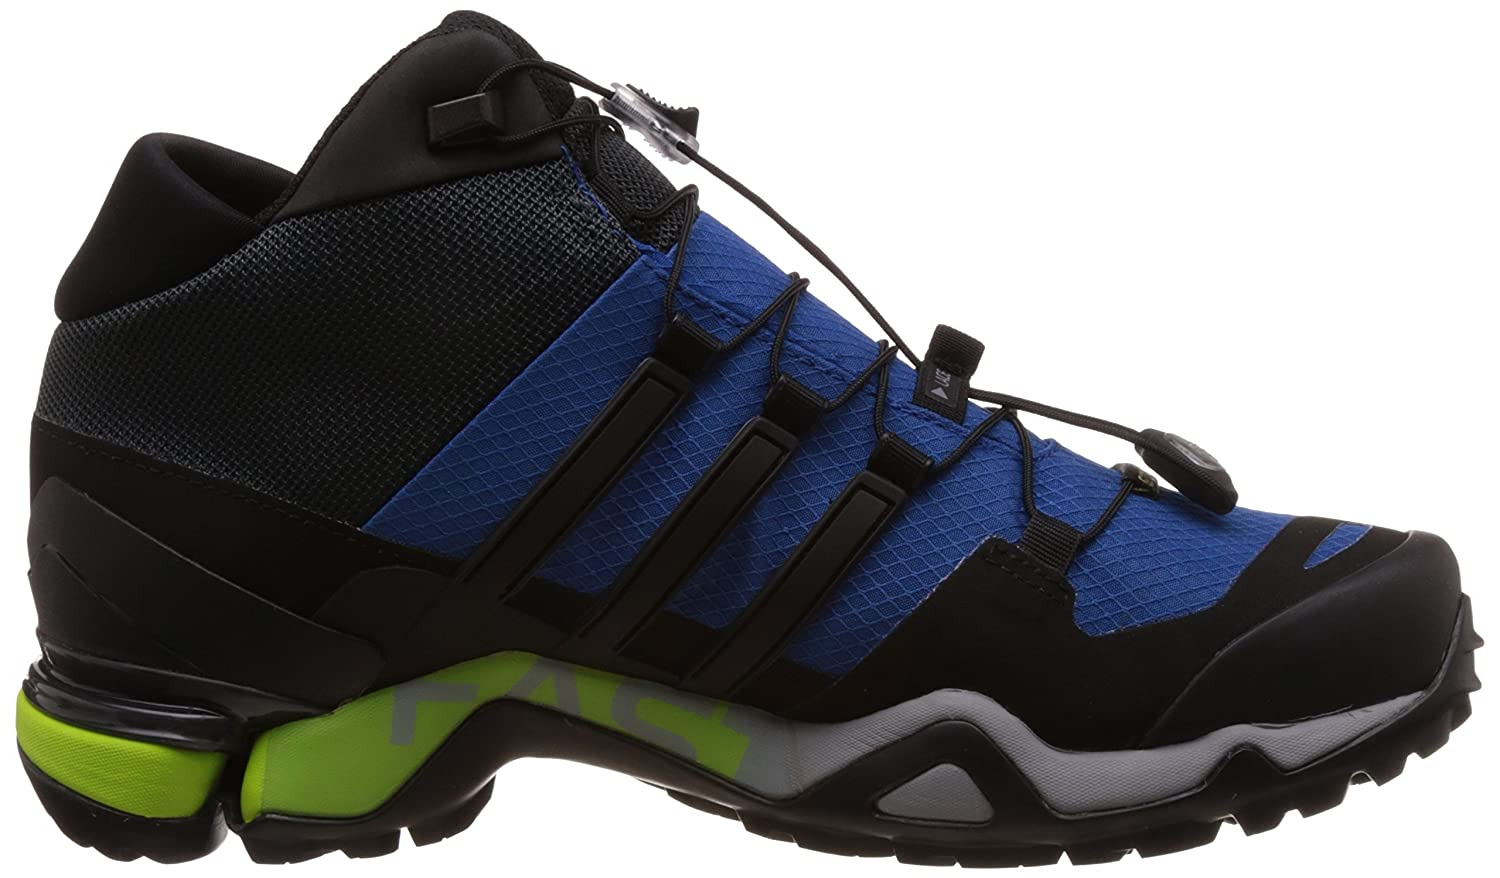 43db76190 Adidas Men s Terrex Fast R Mid GTX Blue and Black Multisport Training Shoes  - 11 UK  Buy Online at Low Prices in India - Amazon.in